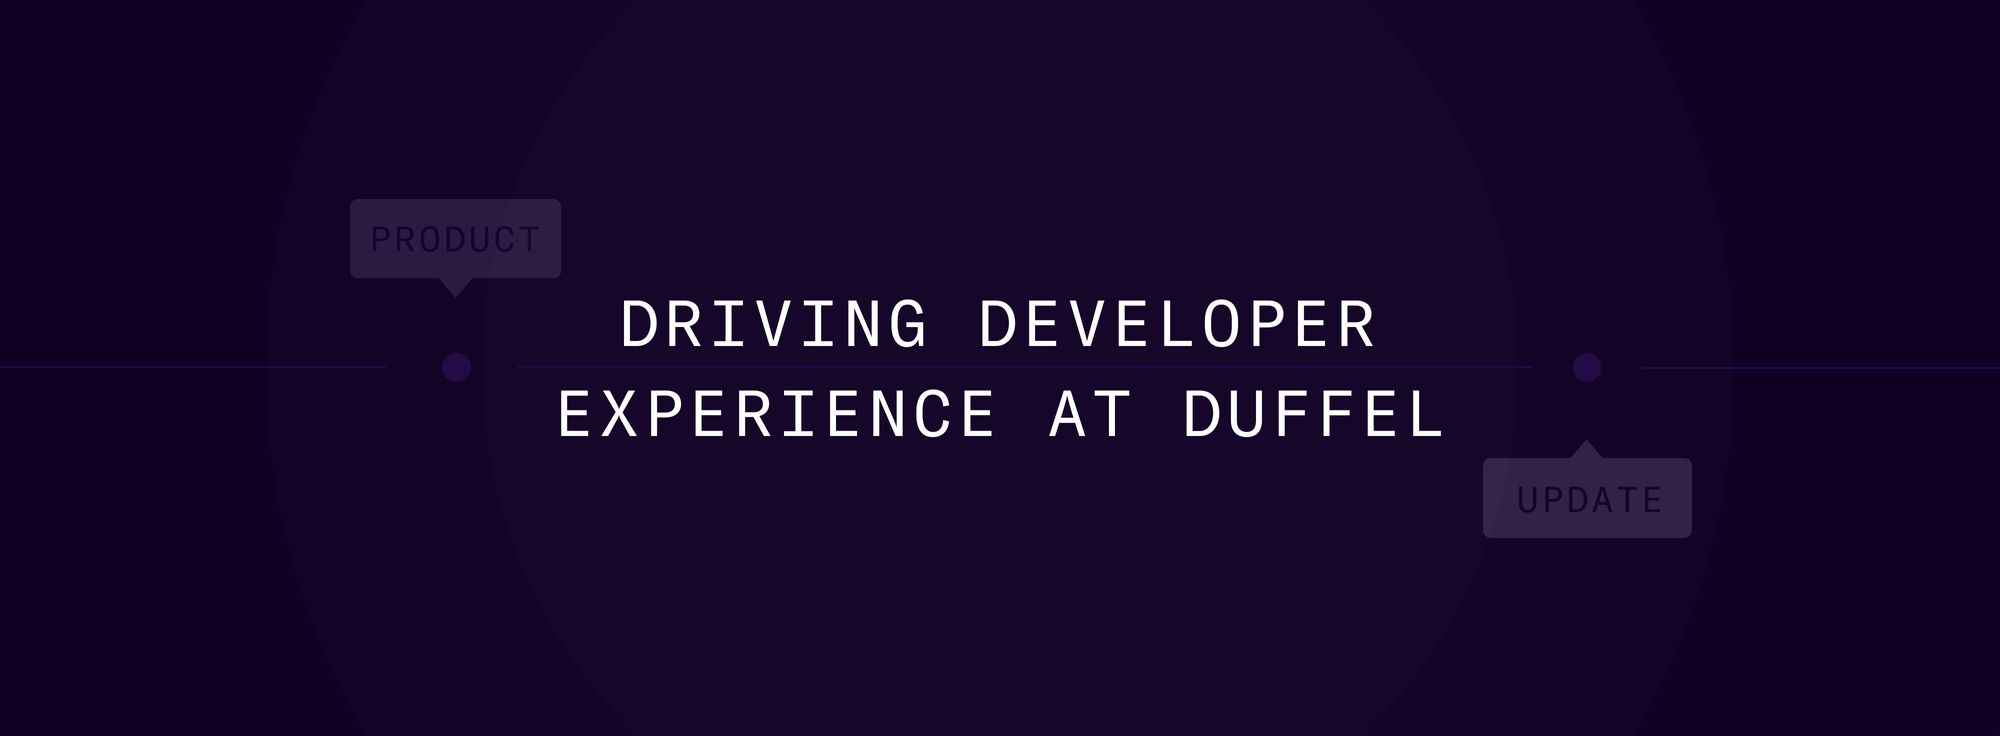 Driving developer experience at Duffel